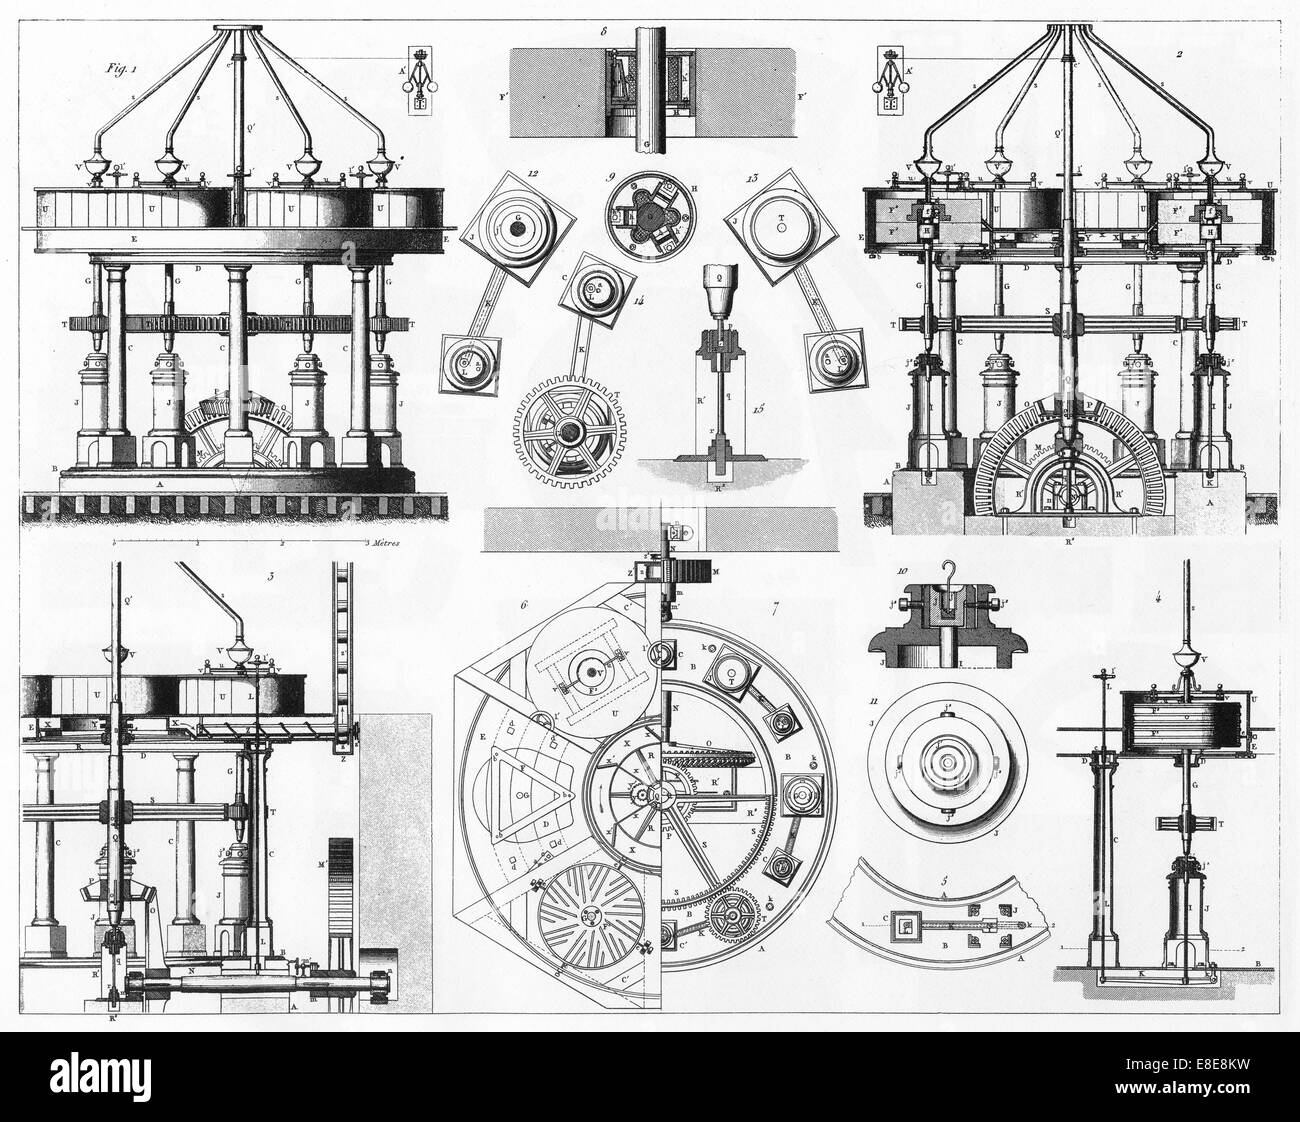 Diagram Illustration Old Steam Stock Photos Chassis Engineering Schematics Engraved Illustrations Of Grinding Mill Construction From Iconographic Encyclopedia Science Literature And Art